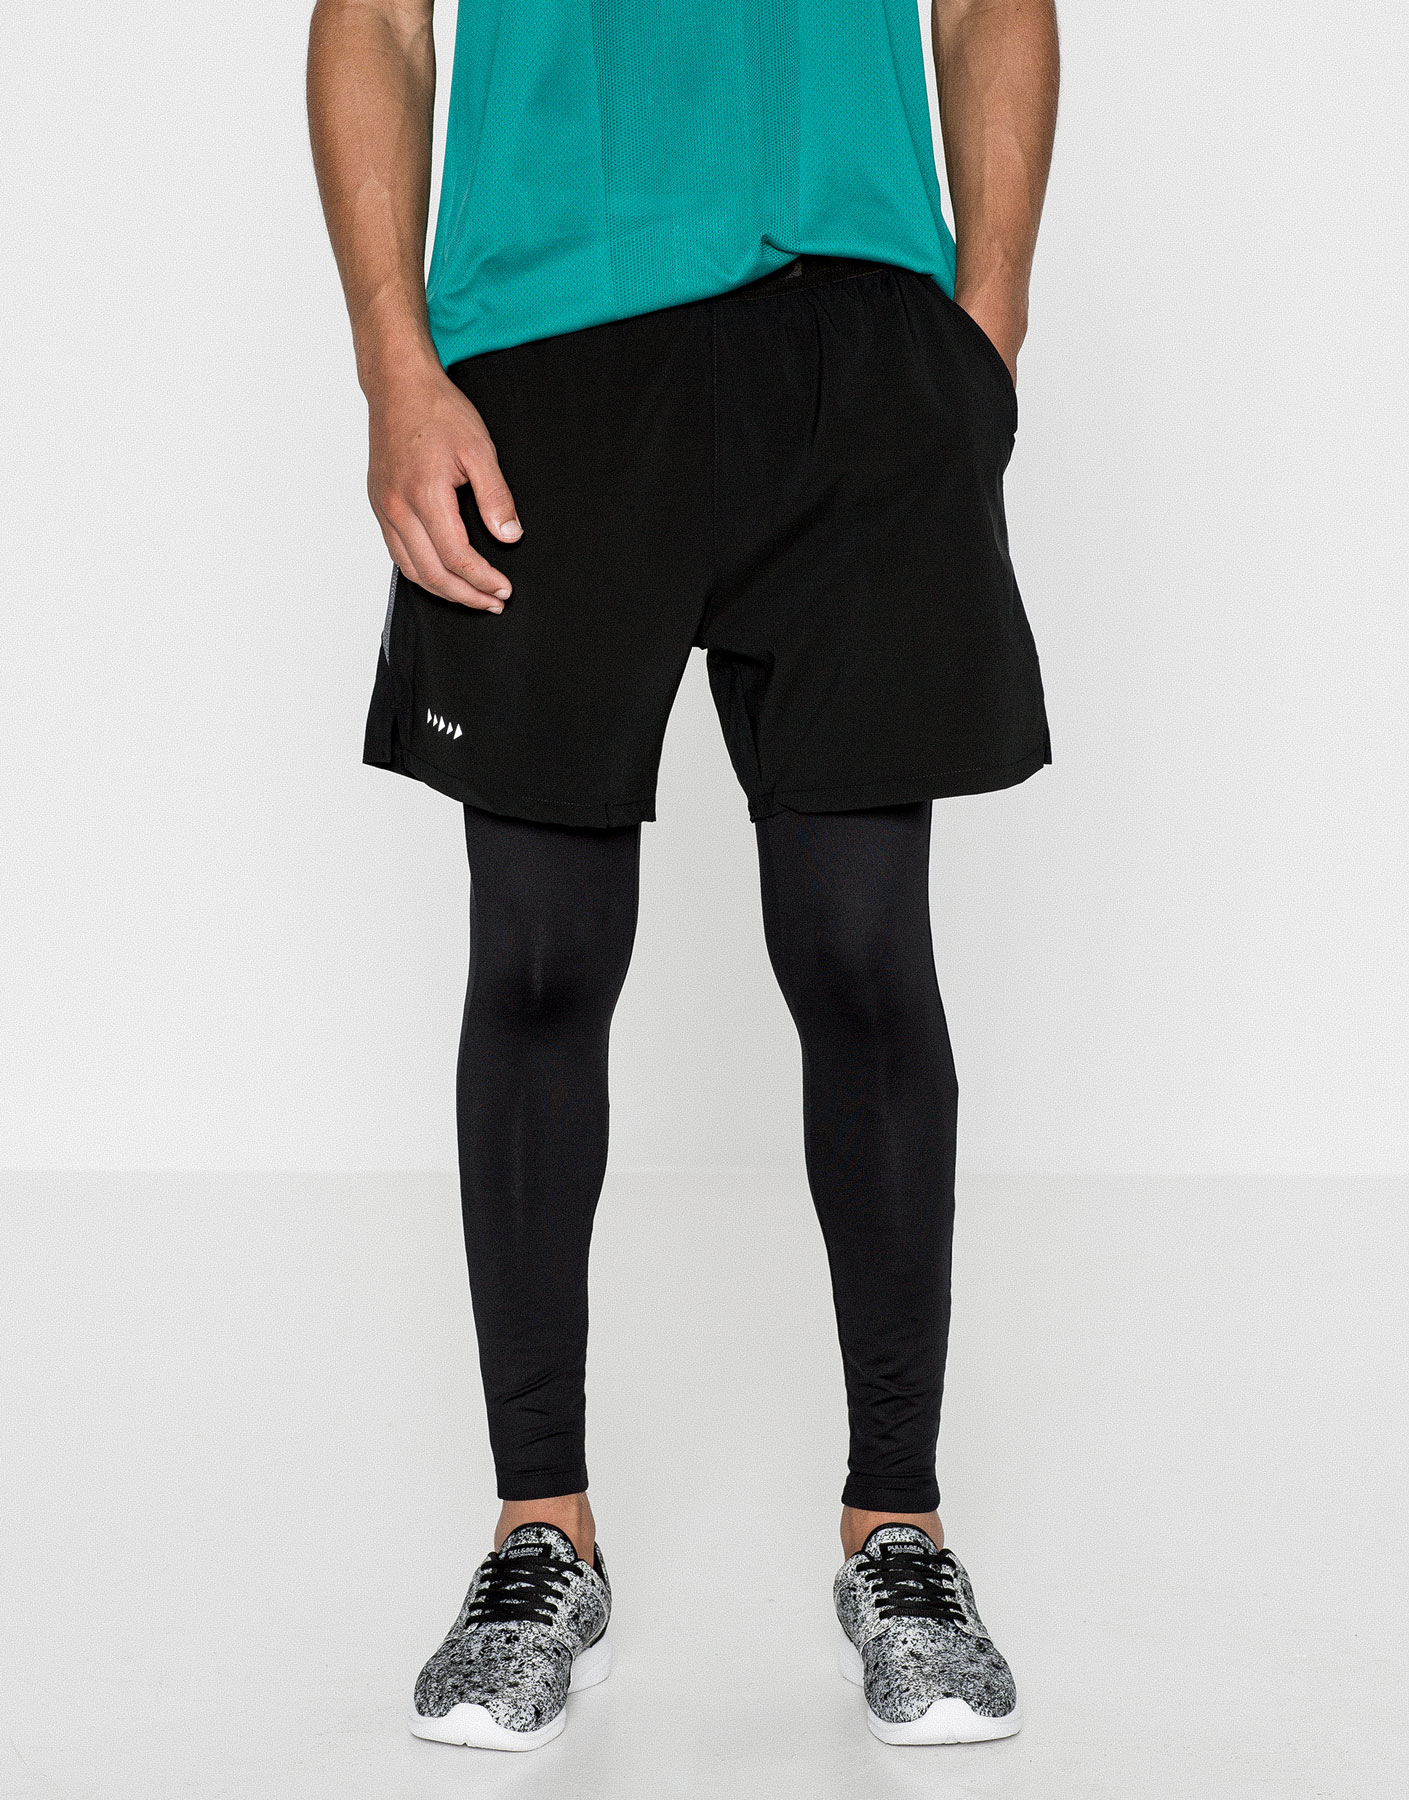 Collant running avec short